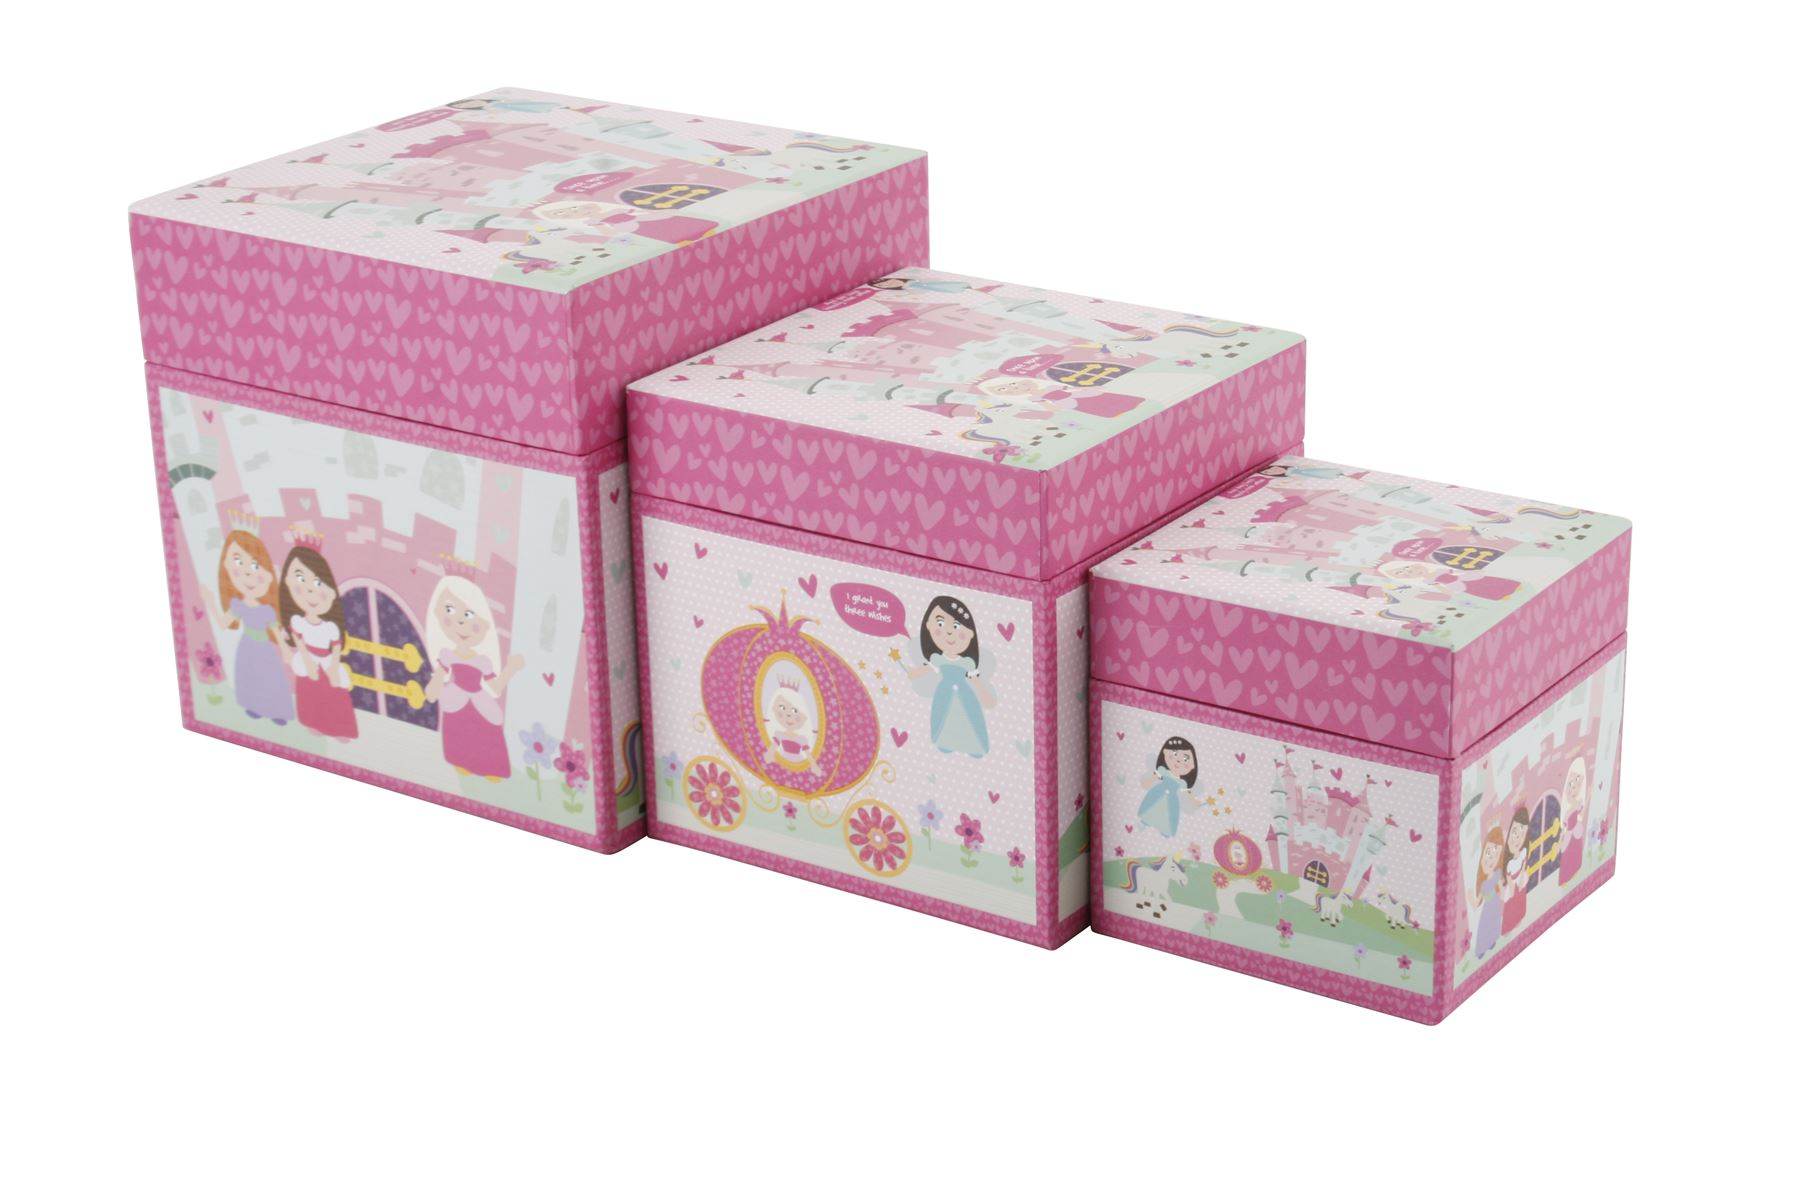 Childrens Kids Bedroom Furniture Set Toy Chest Boxes Ikea: SET 3 X GIRLS PRINCESS STORAGE BOXES Toy Kids Childrens